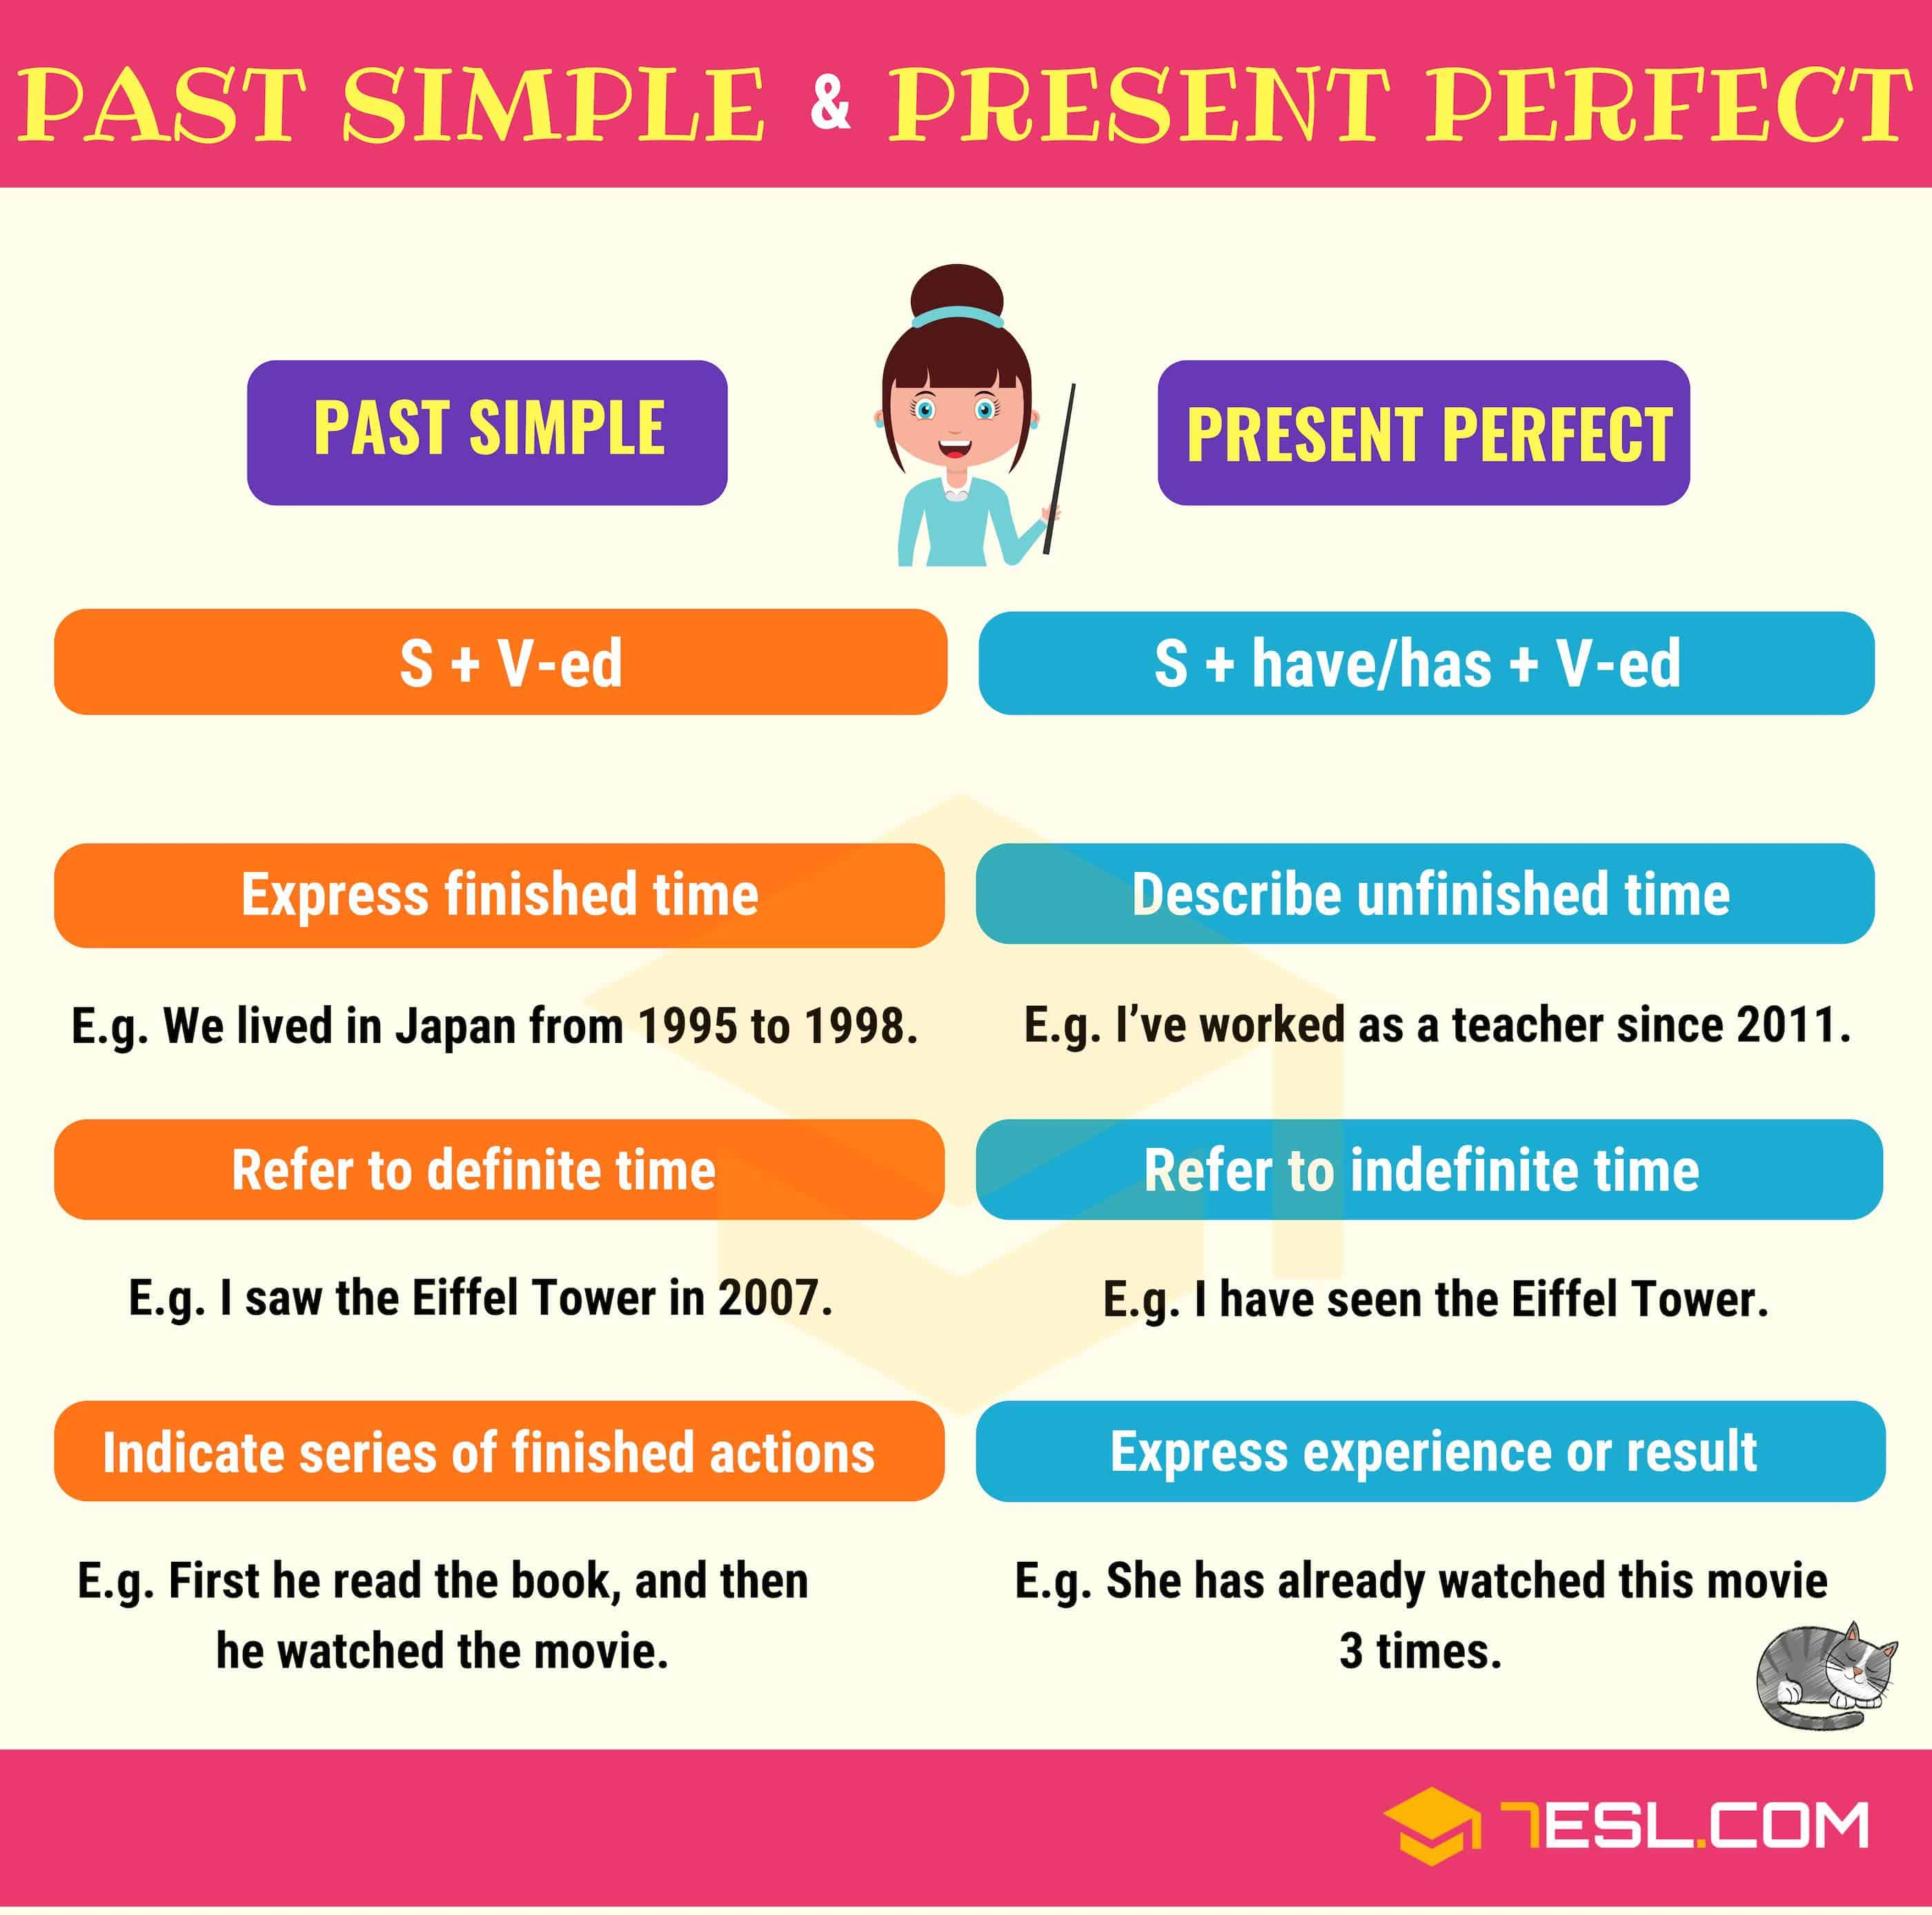 Picture Perfect Present Perfect Vs Past Simple Useful Differences 7 E S L